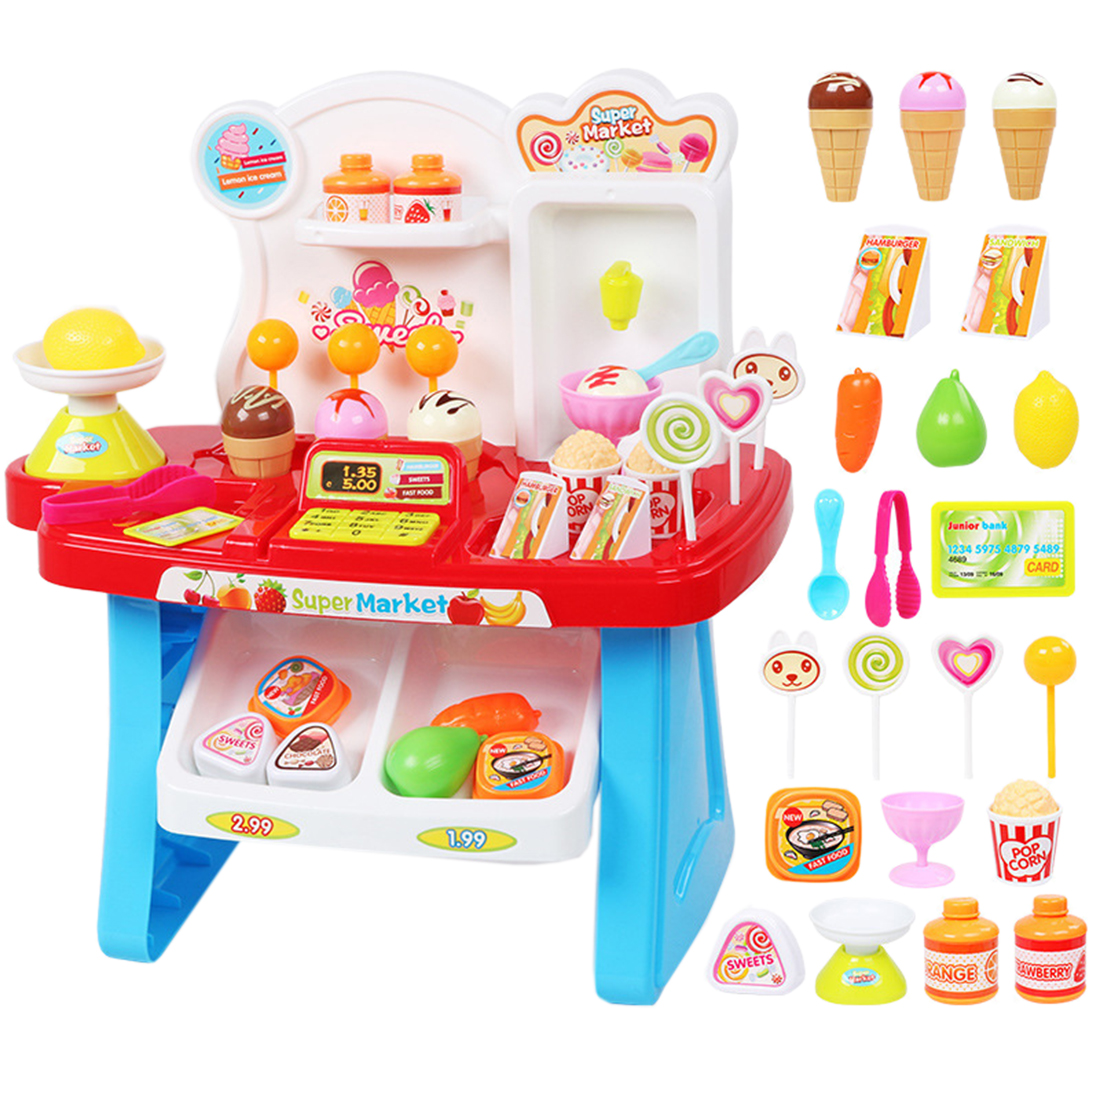 34Pcs/set Children Mini Superarket Playset Pretend Shopping Market Play Stand Groceries Toy With Light And Sound - Blue/Pink